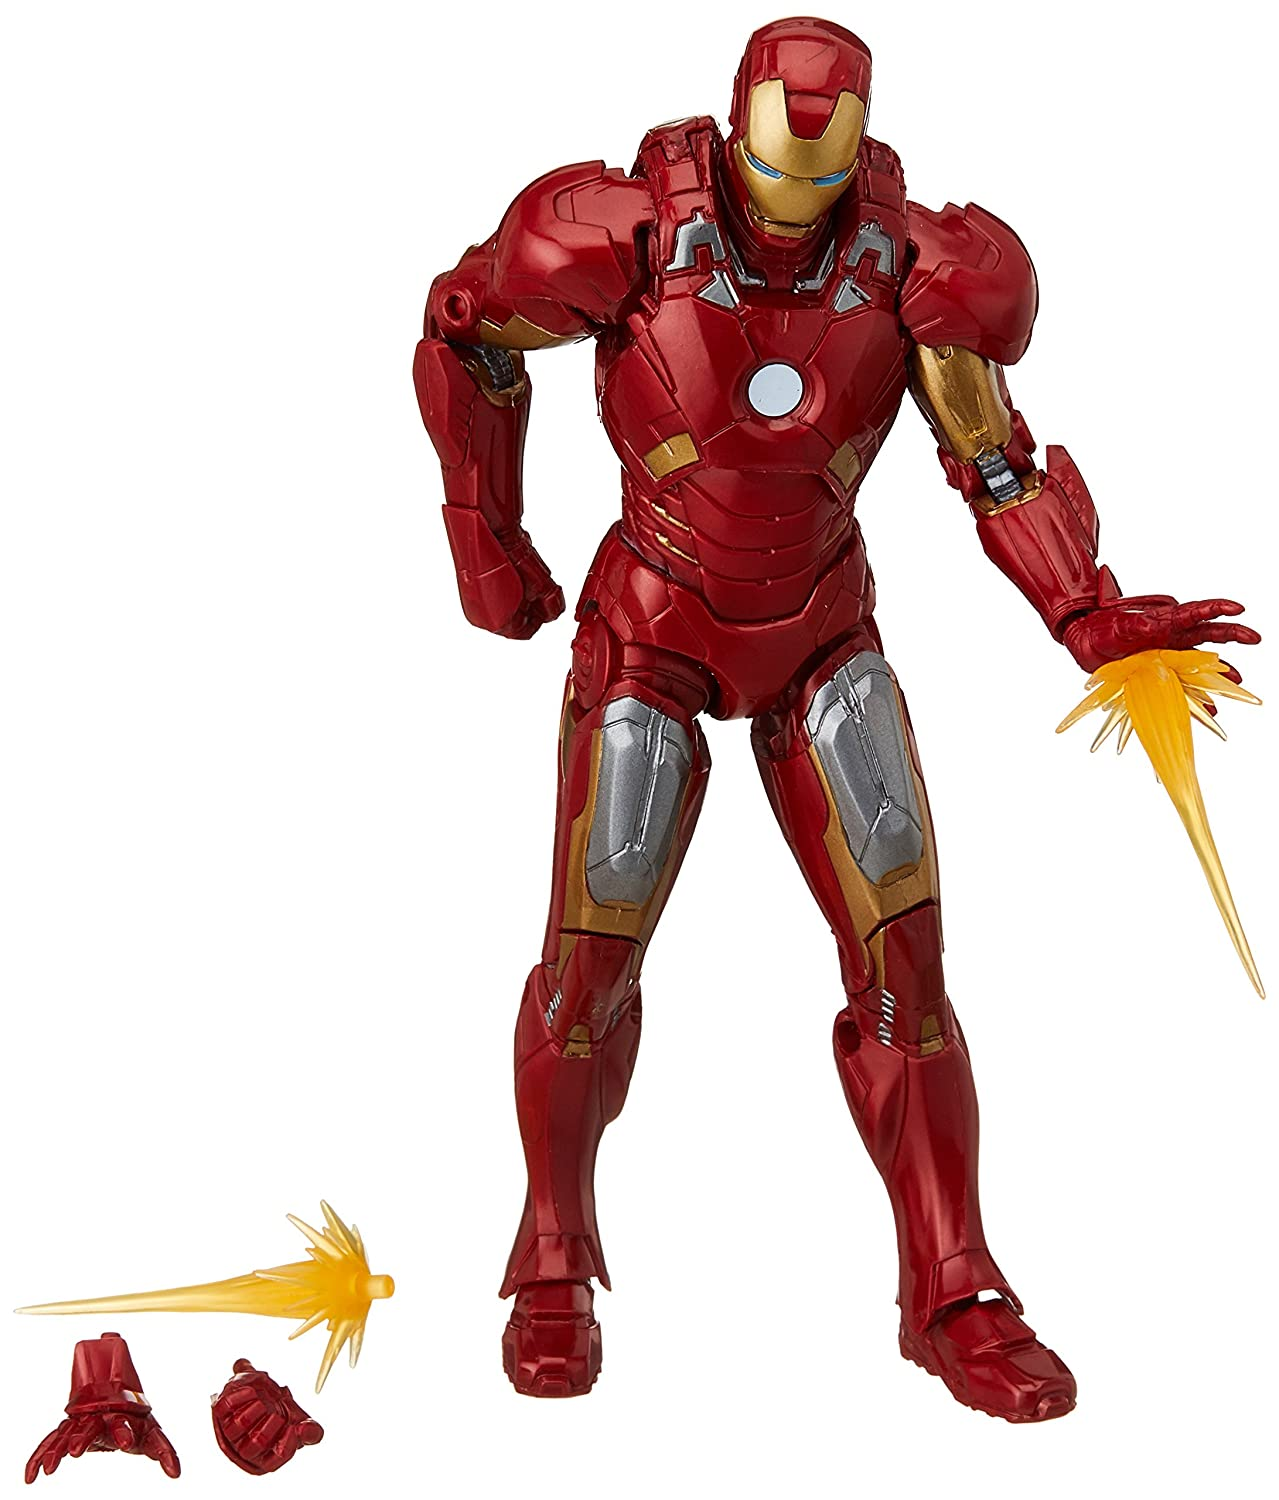 Marvel Studios: The First Ten Years The Avengers Iron Man Mark VII Hasbro E2441